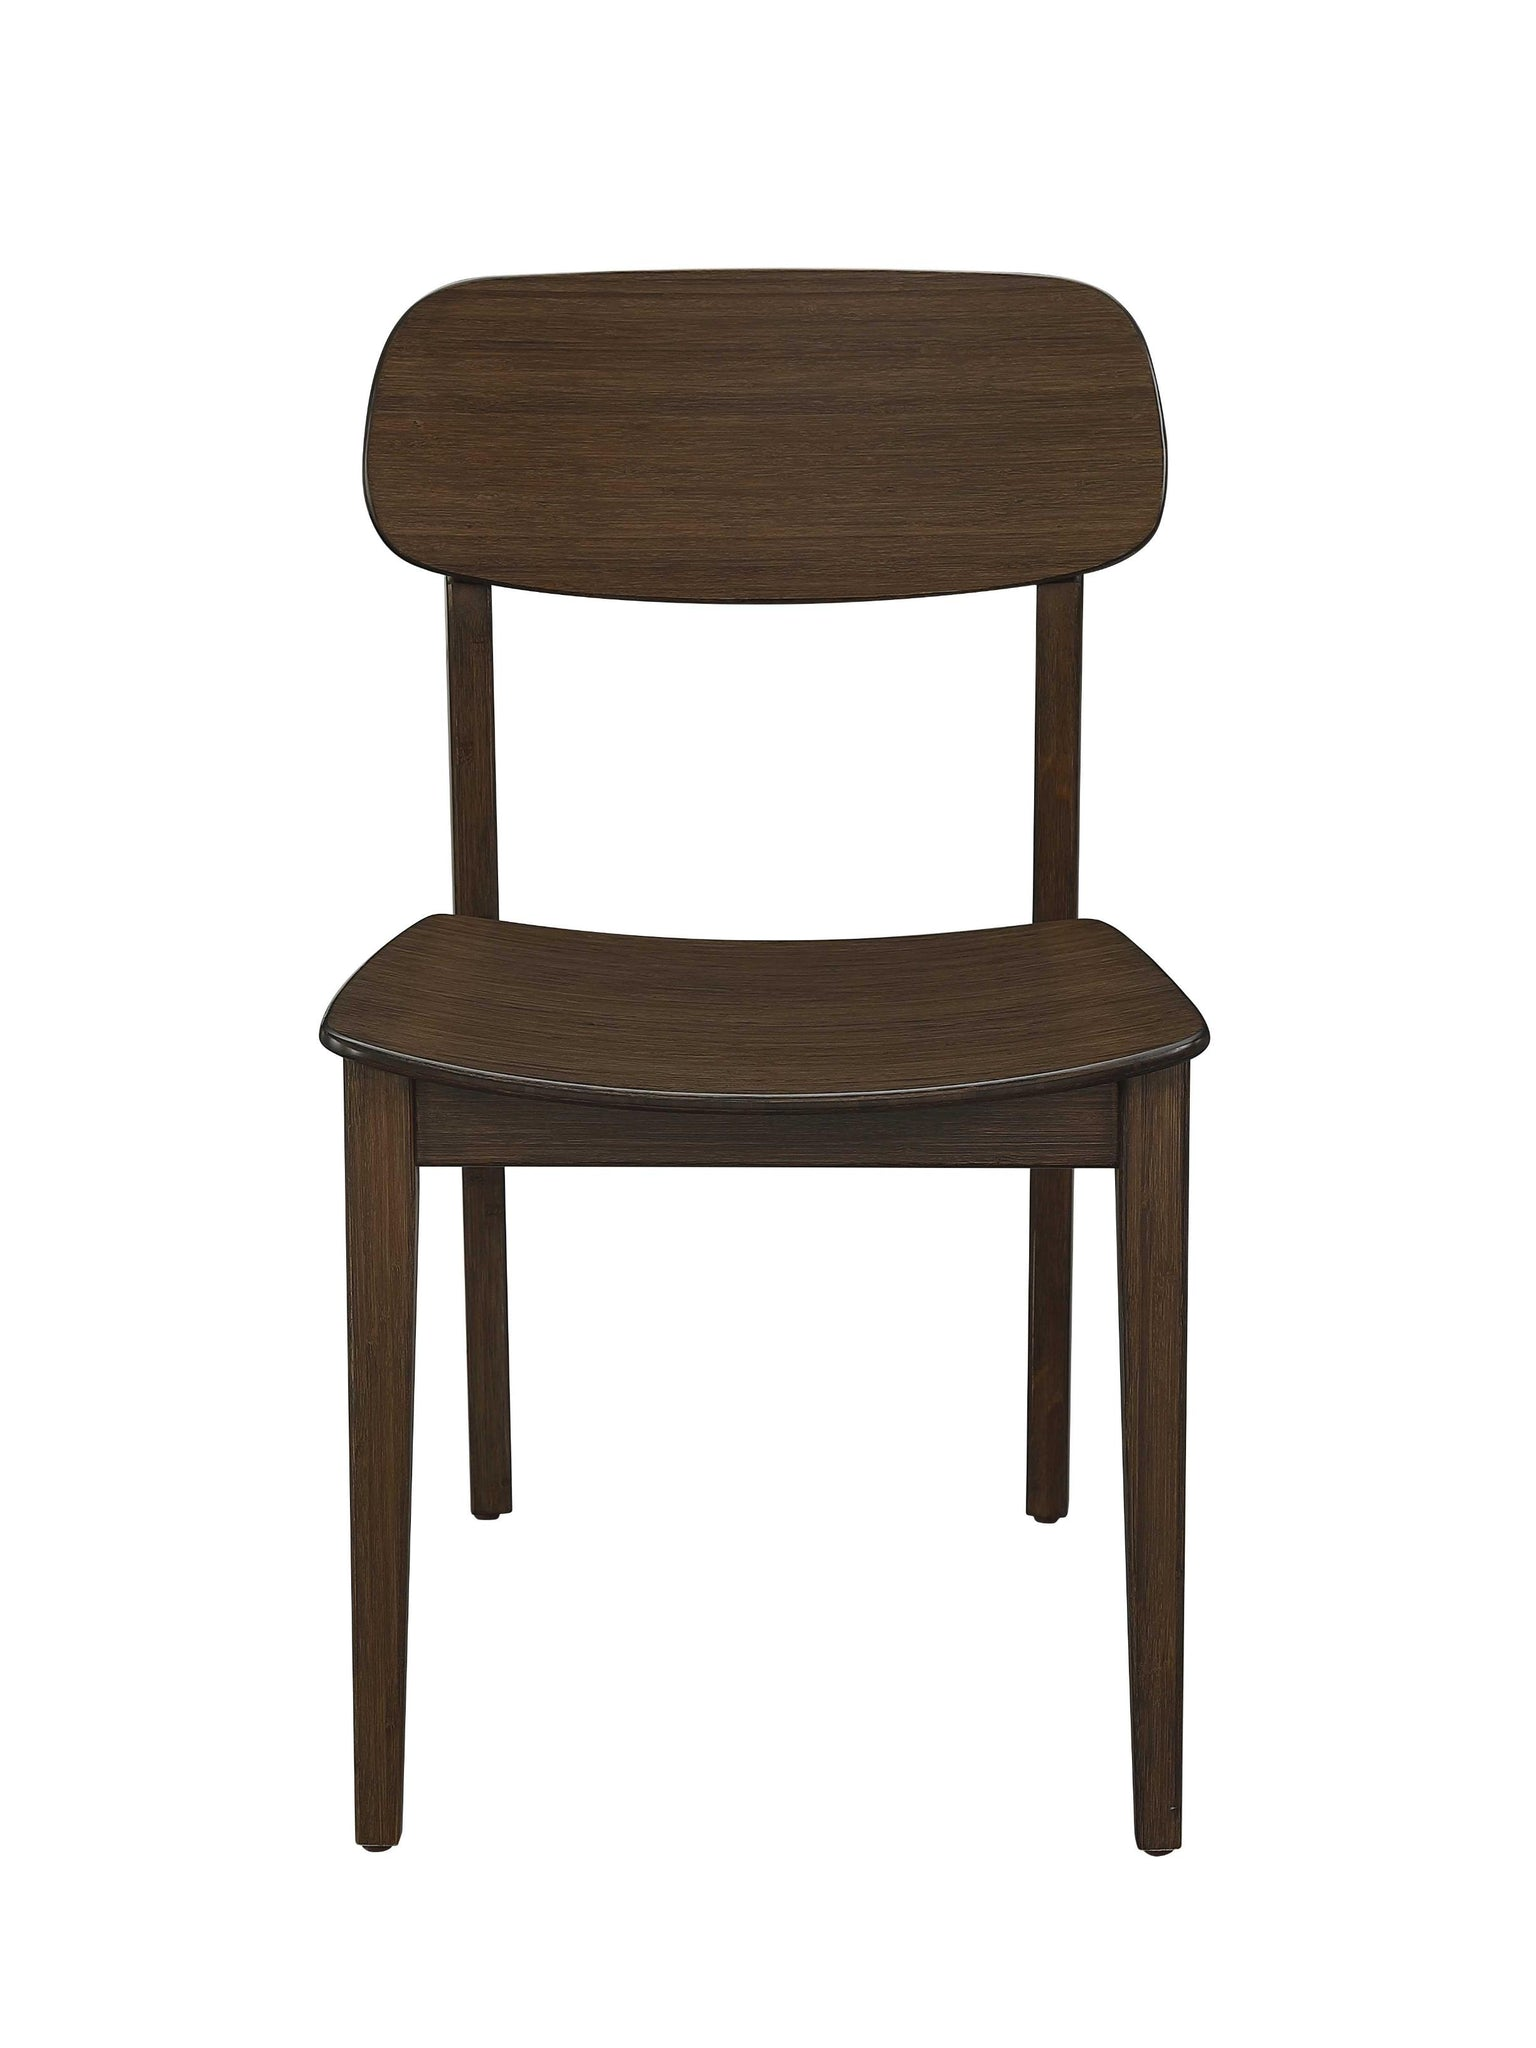 "22.05"" x 18.9"" x 33.4"" Chair, Black Walnut, (Set of 2)"